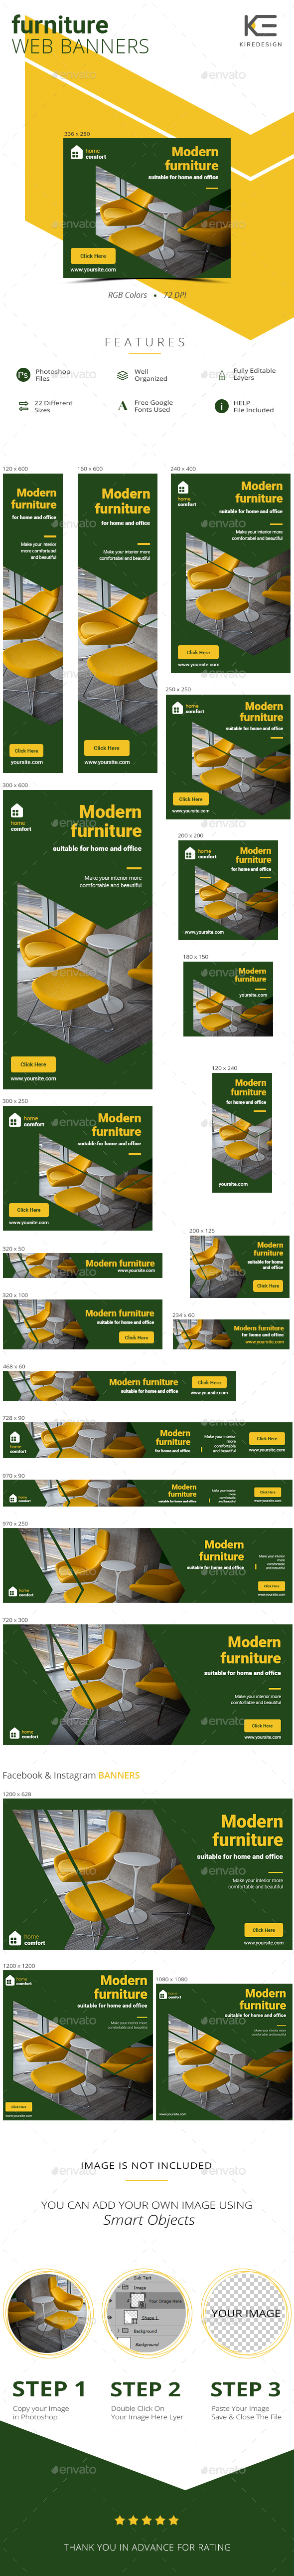 Furniture Salon Web Banners - Banners & Ads Web Elements